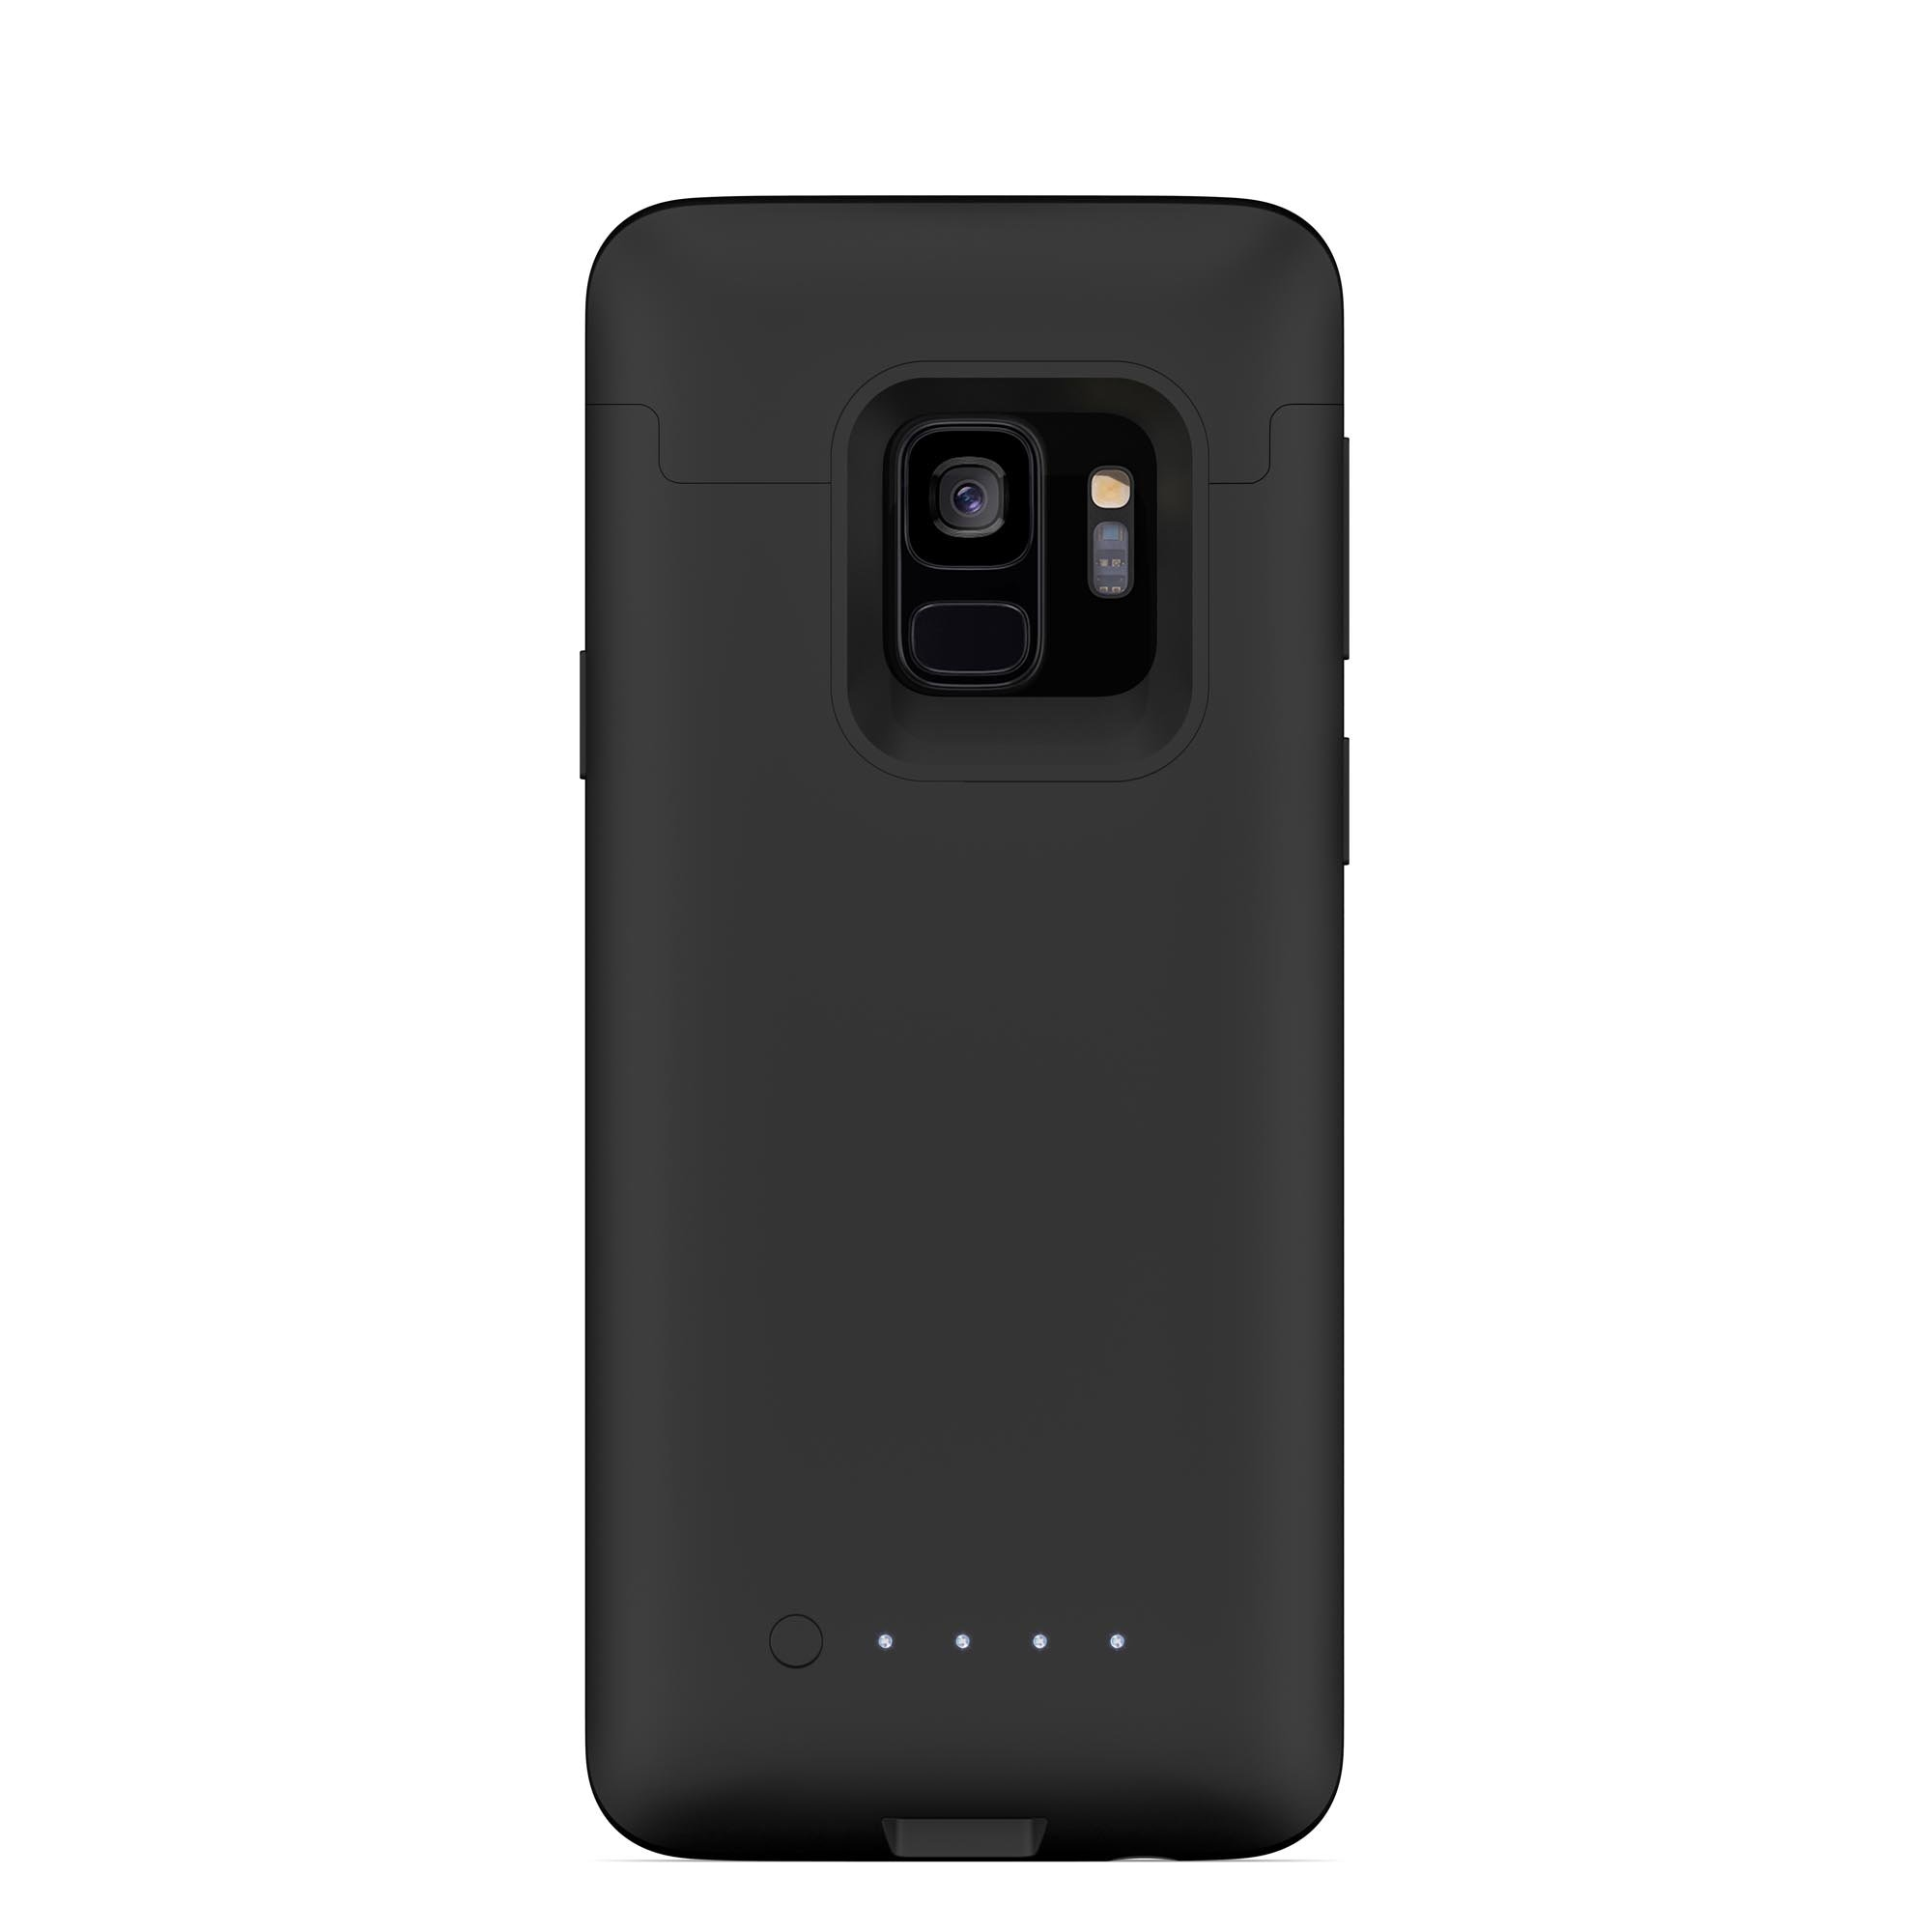 Juice Pack Made for Samsung Galaxy S9 - Wireless Charging Battery Case - Black by mophie (Image #2)